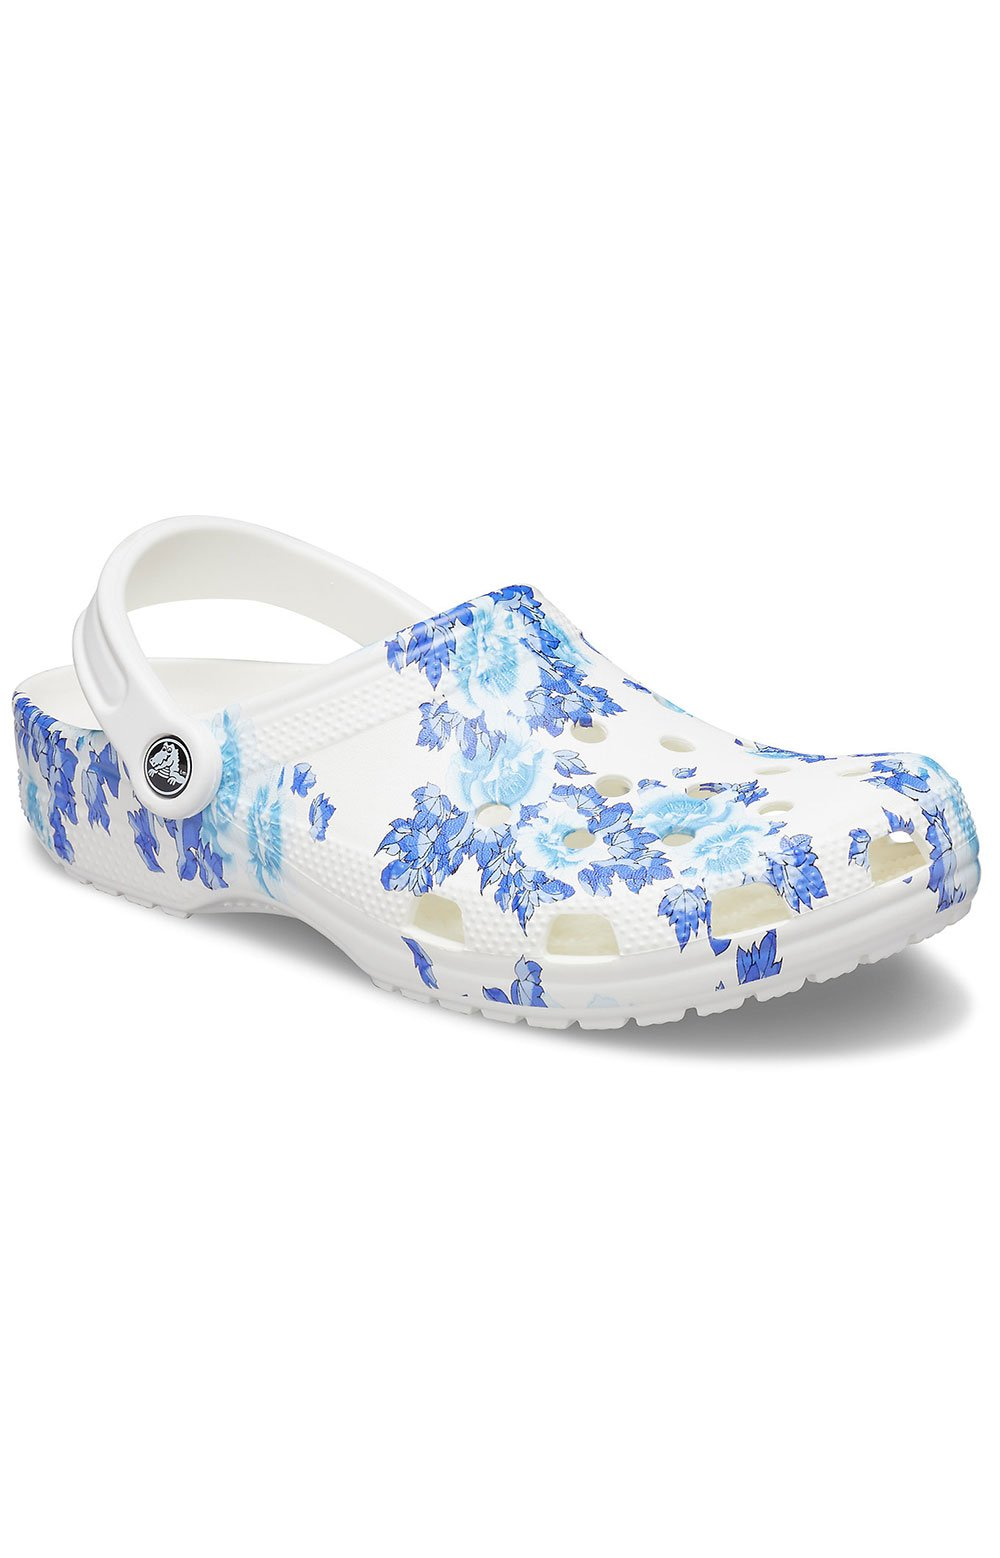 Crocs Classic Printed Floral Clogs - White/Blue